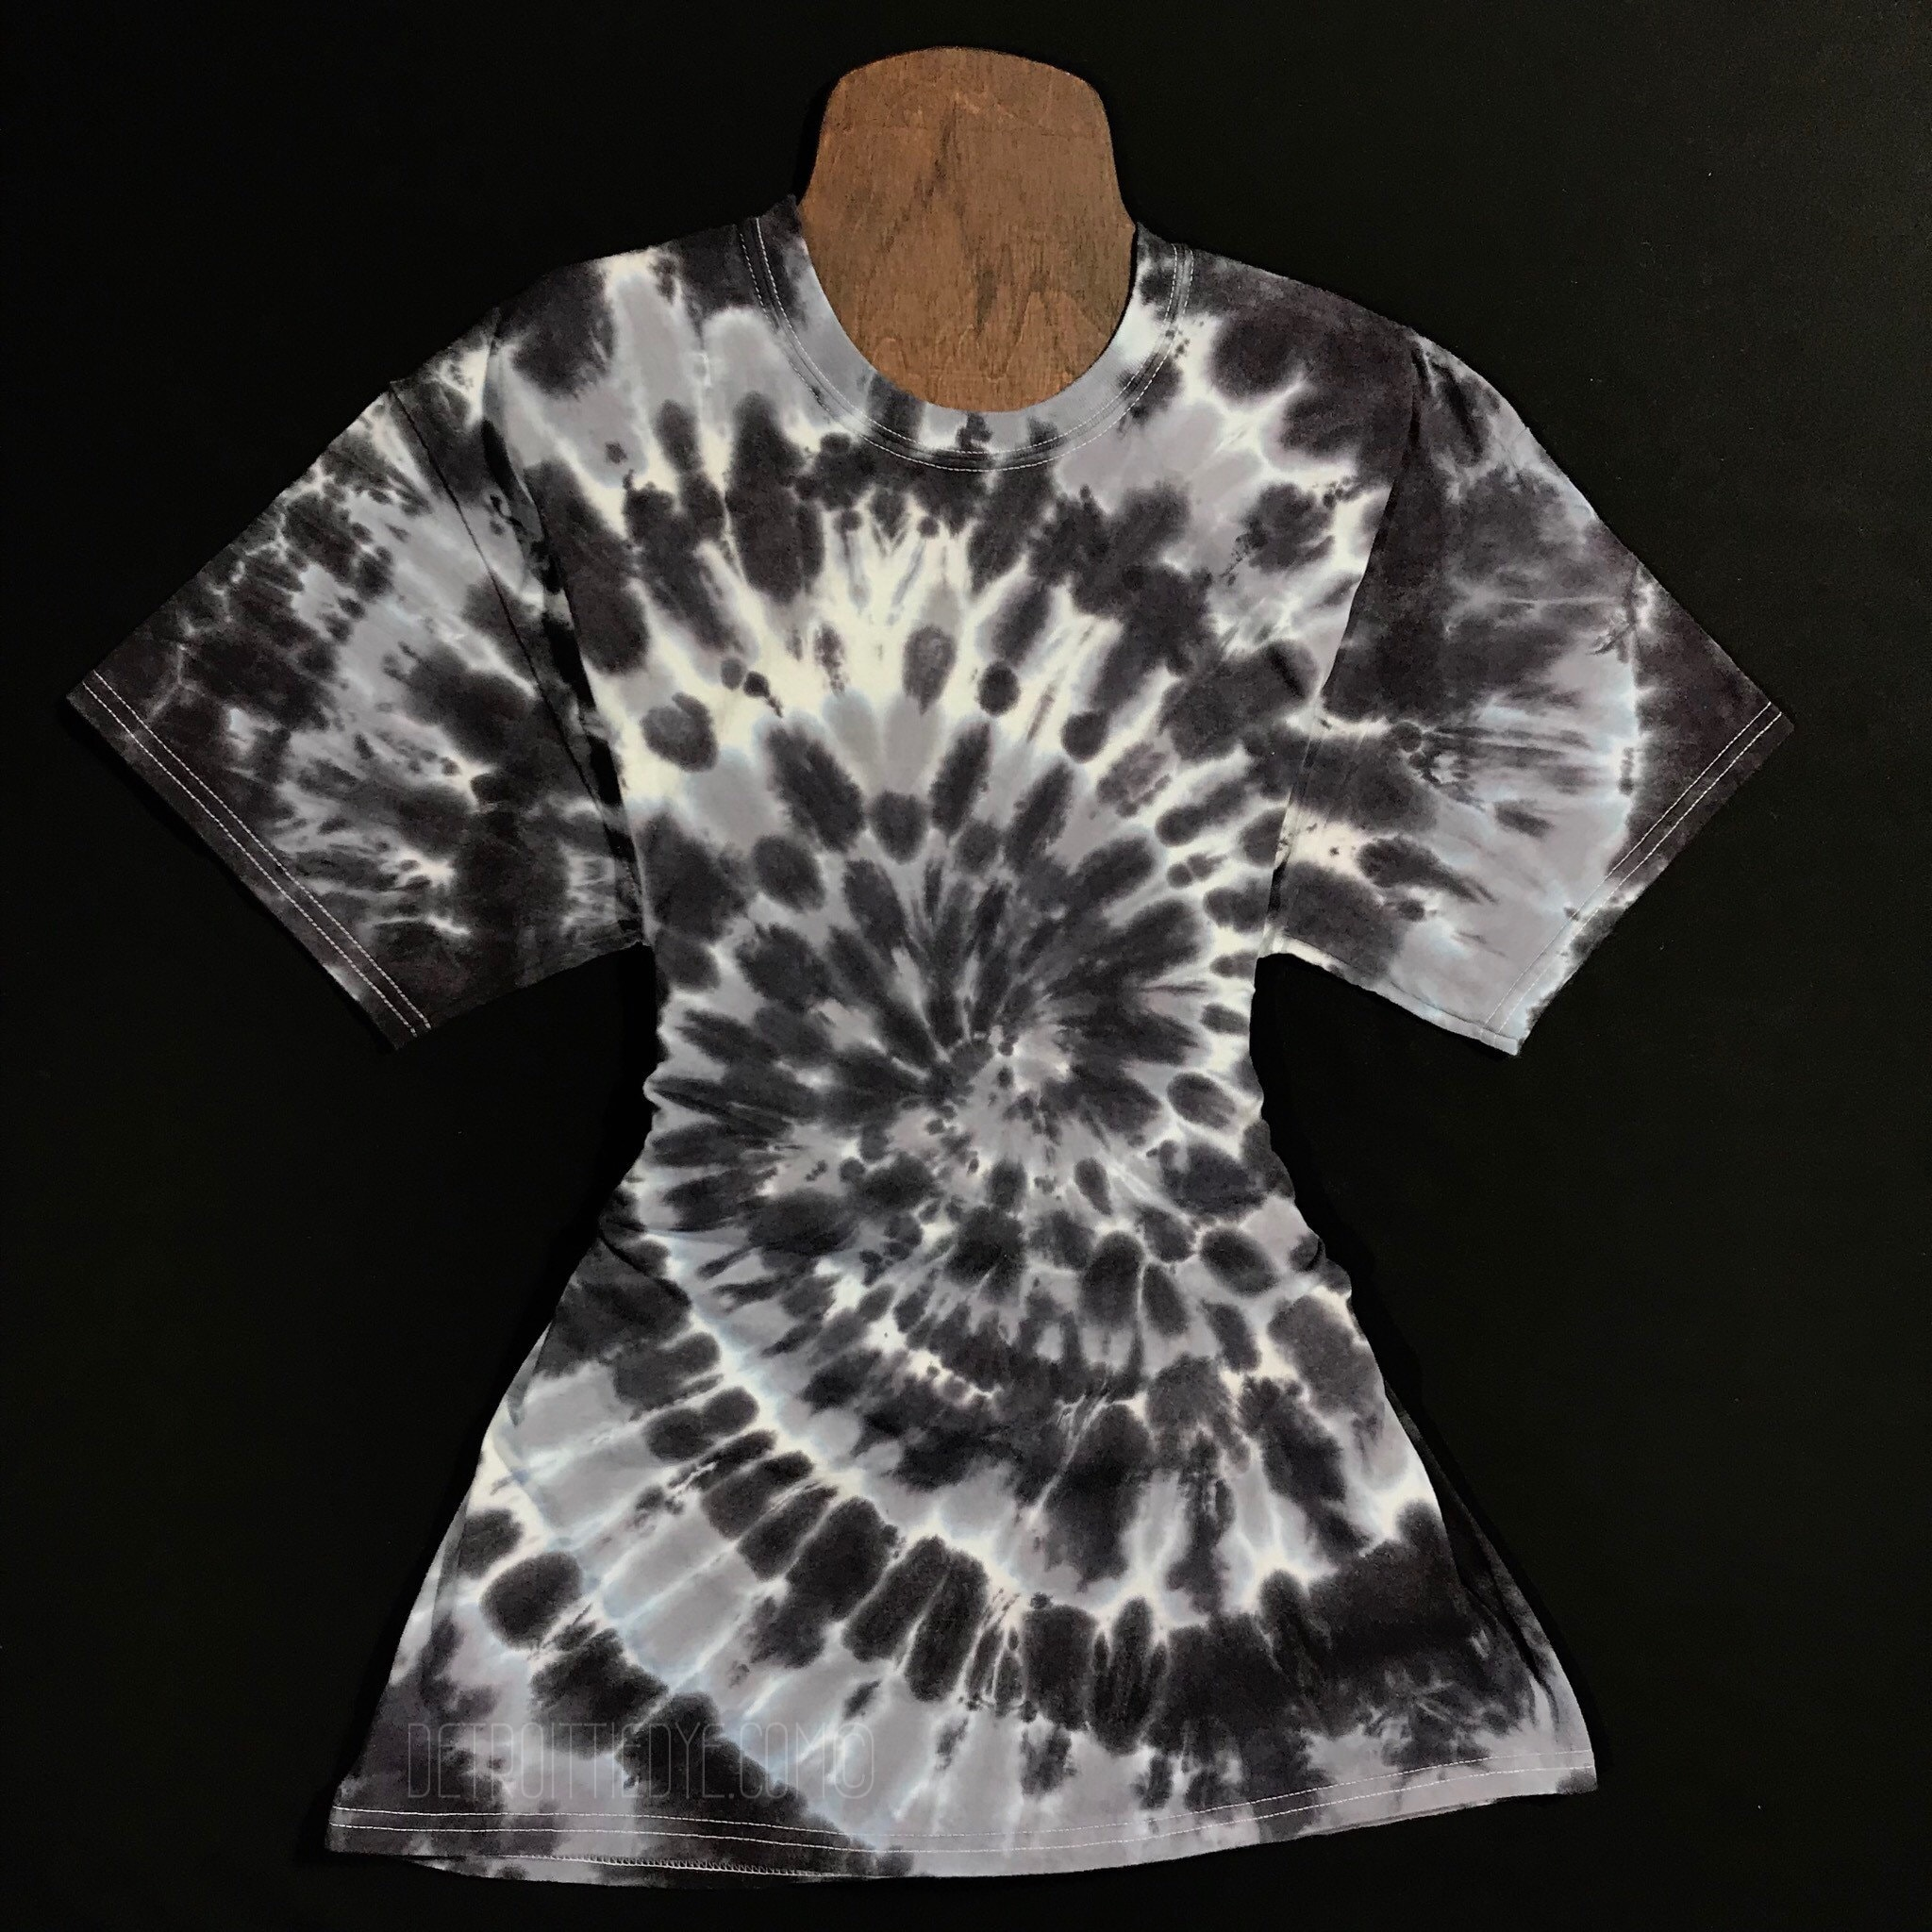 Monochrome Tie Dye Shirt Custom Made Tie Dye T Shirt Black Etsy